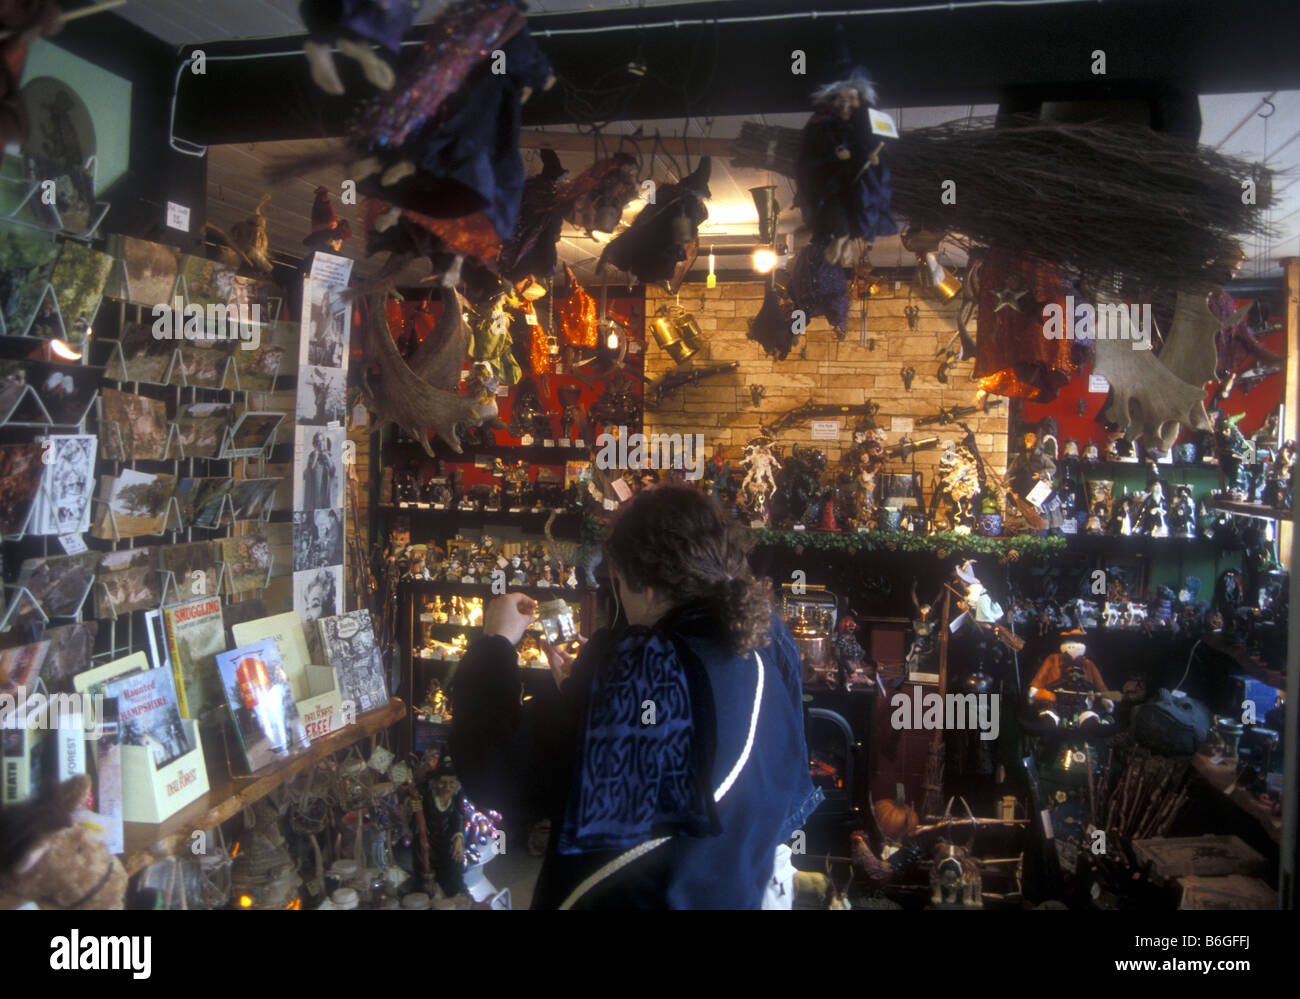 A shop selling witchcraft memorabilia Burley in the New Forest UK - Stock Image